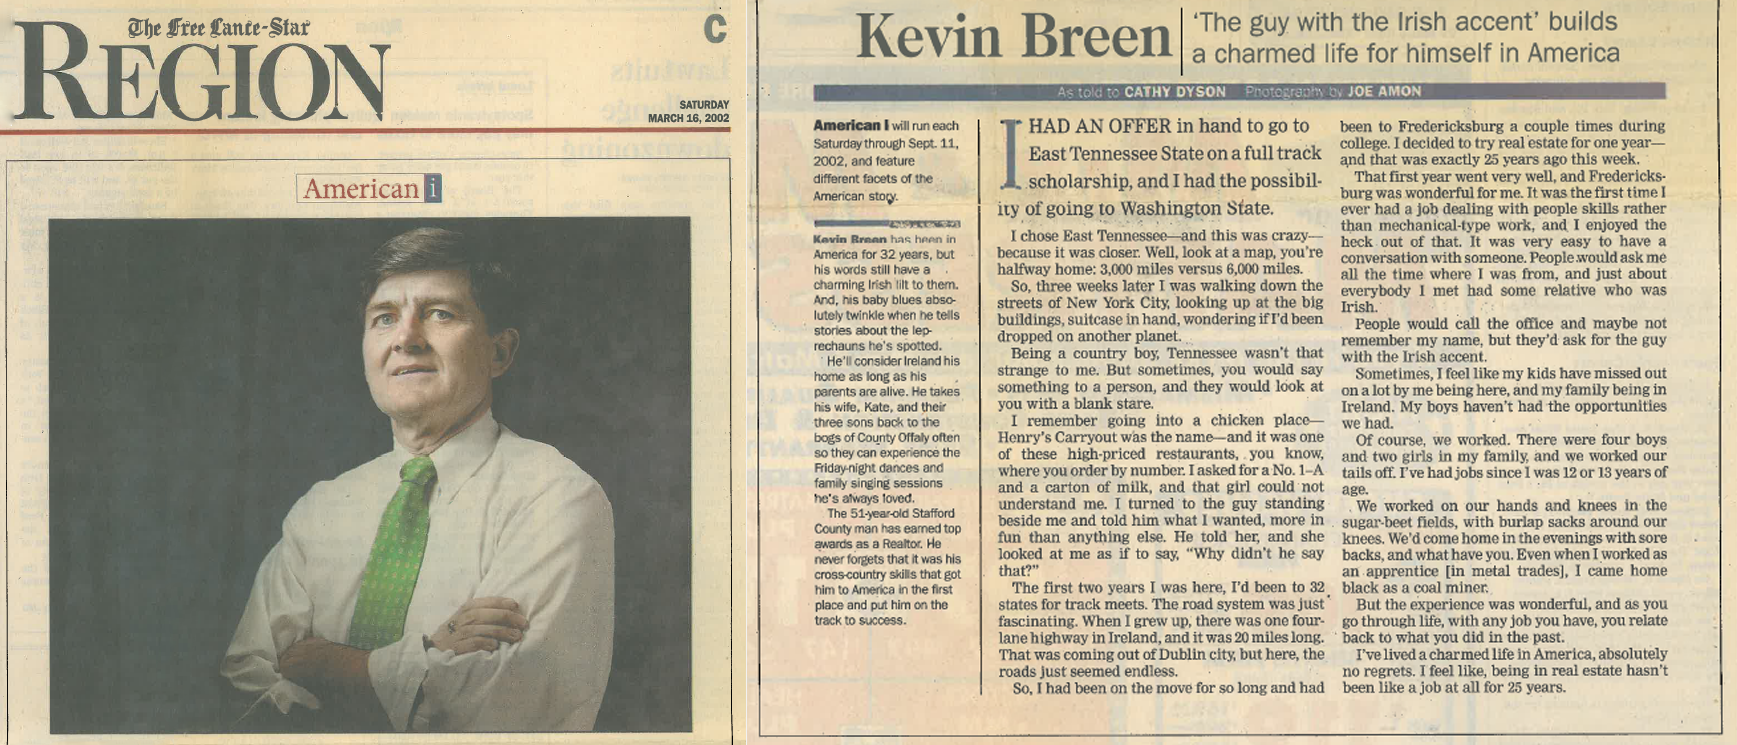 Kevin Breen in the Free Lance-Star Newspaper - The guy with the Irish accent.